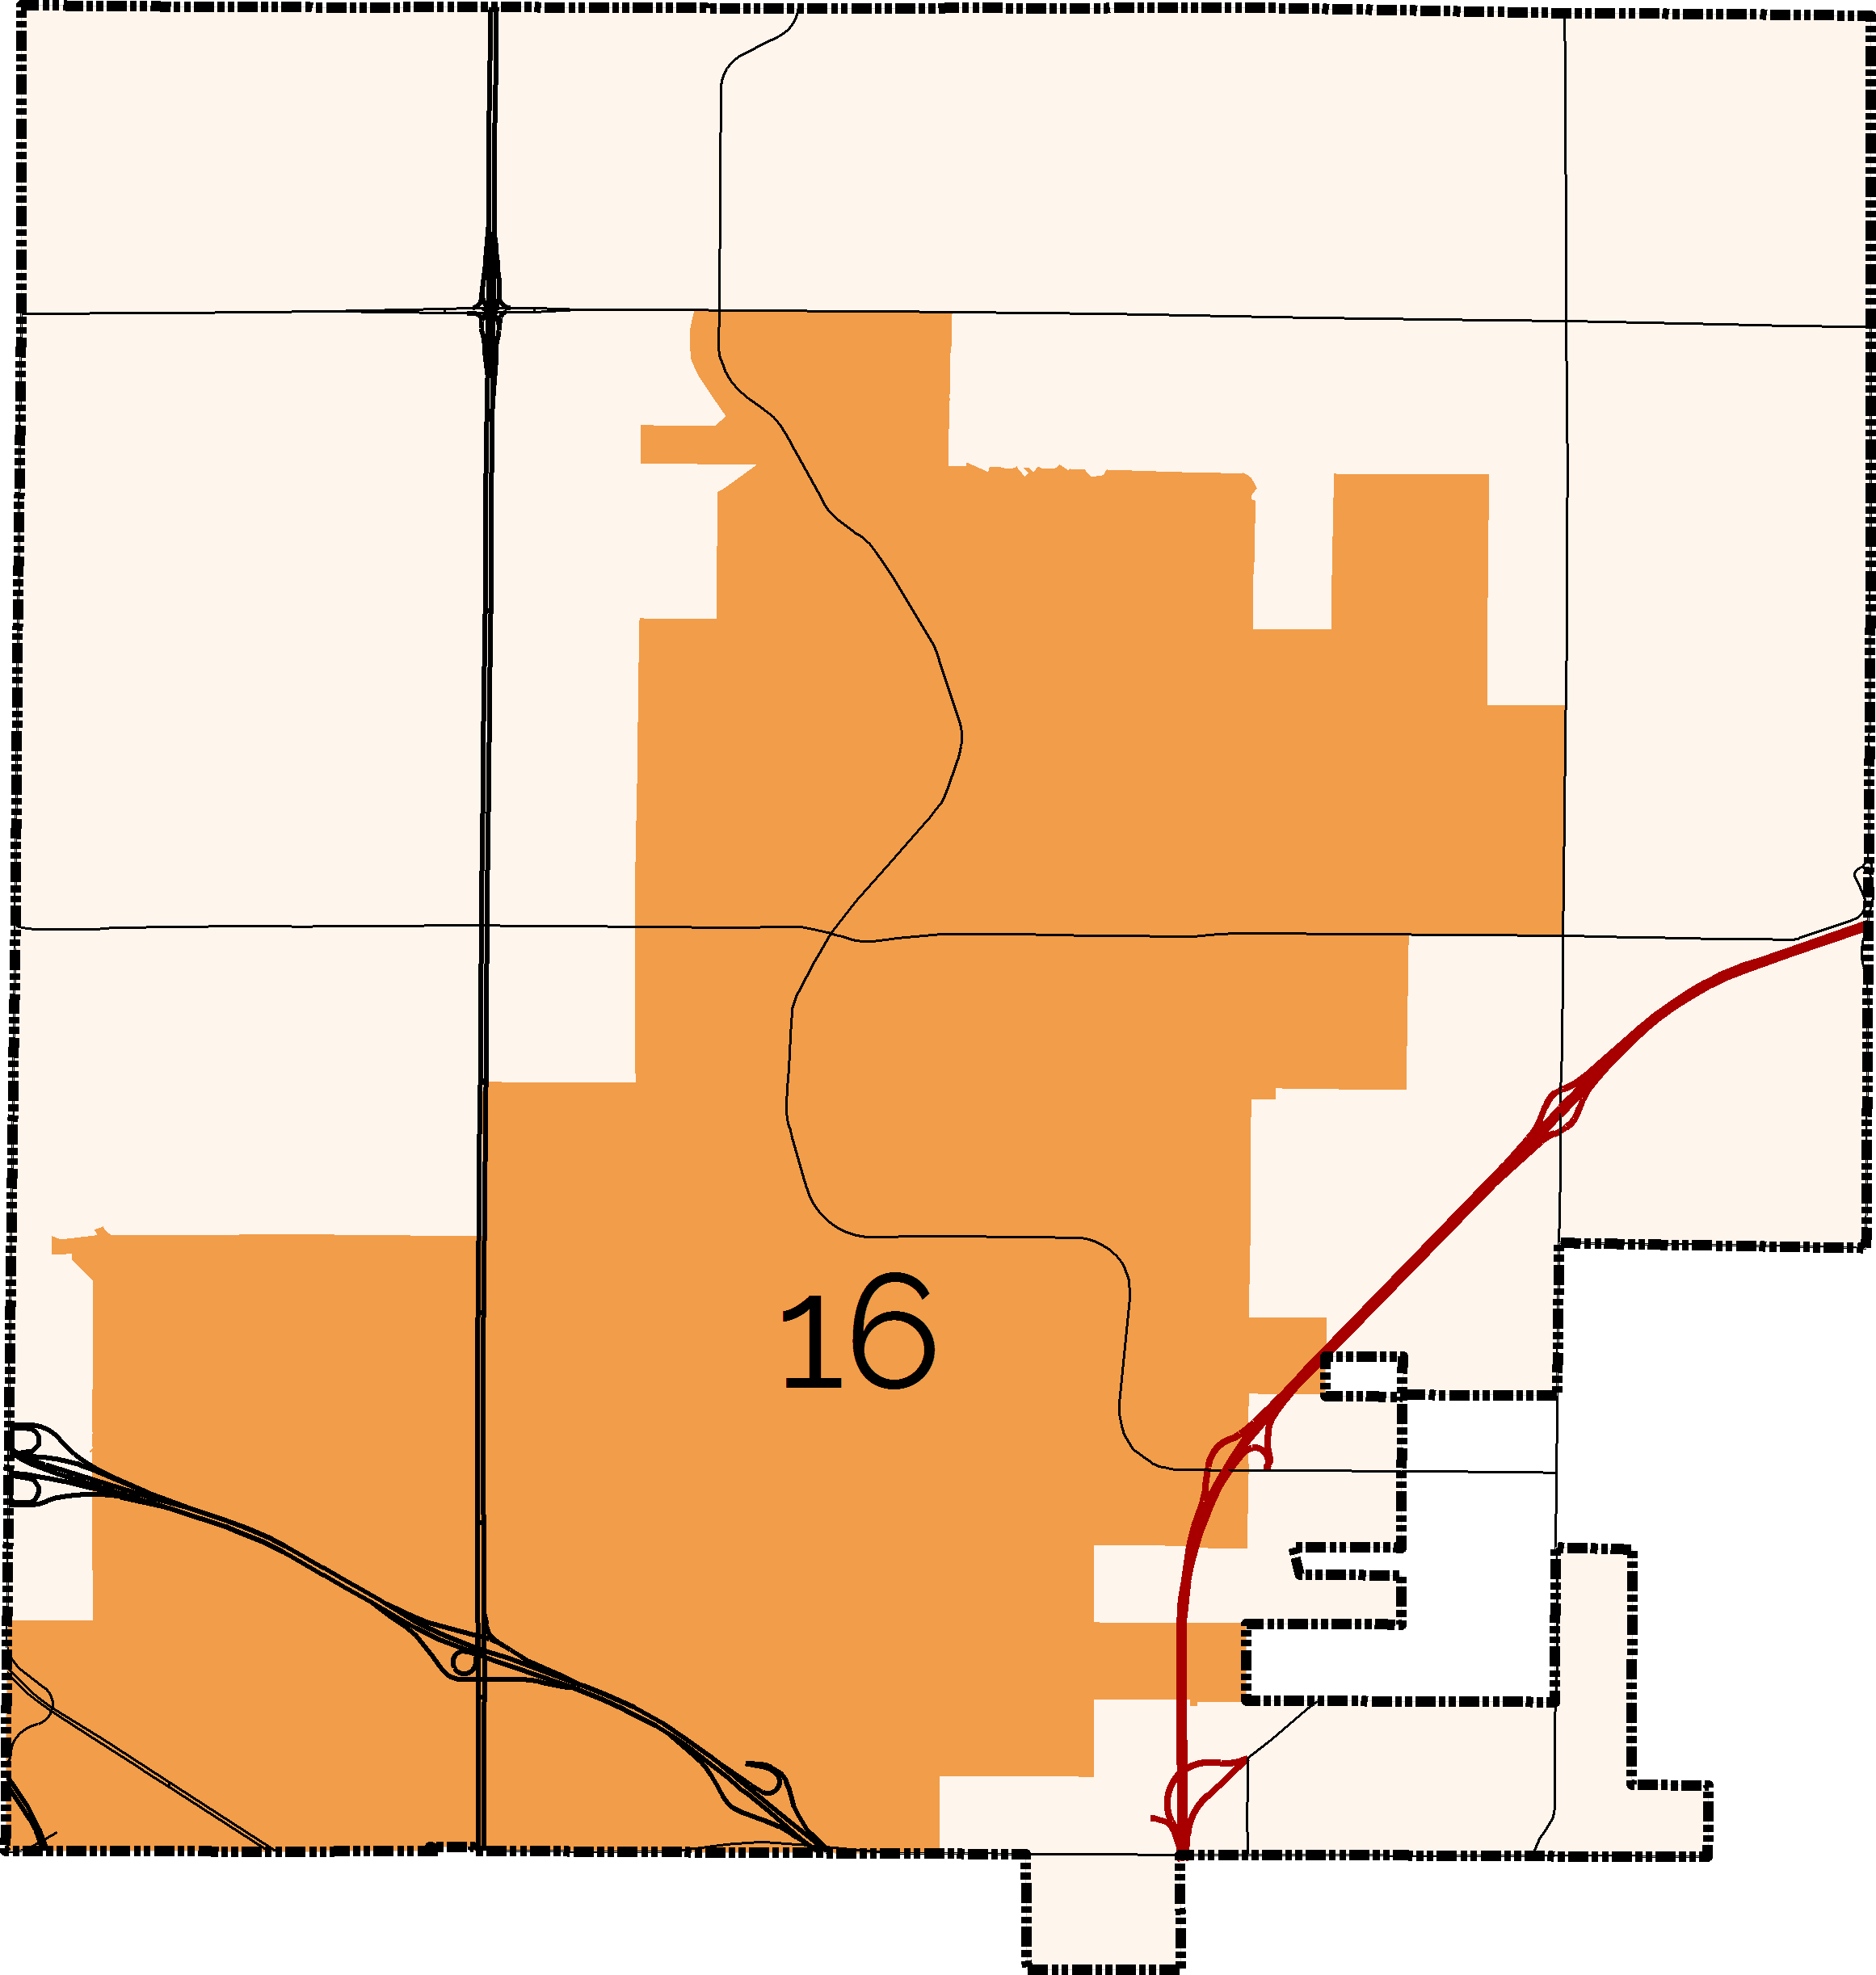 District 16 Boundary Map